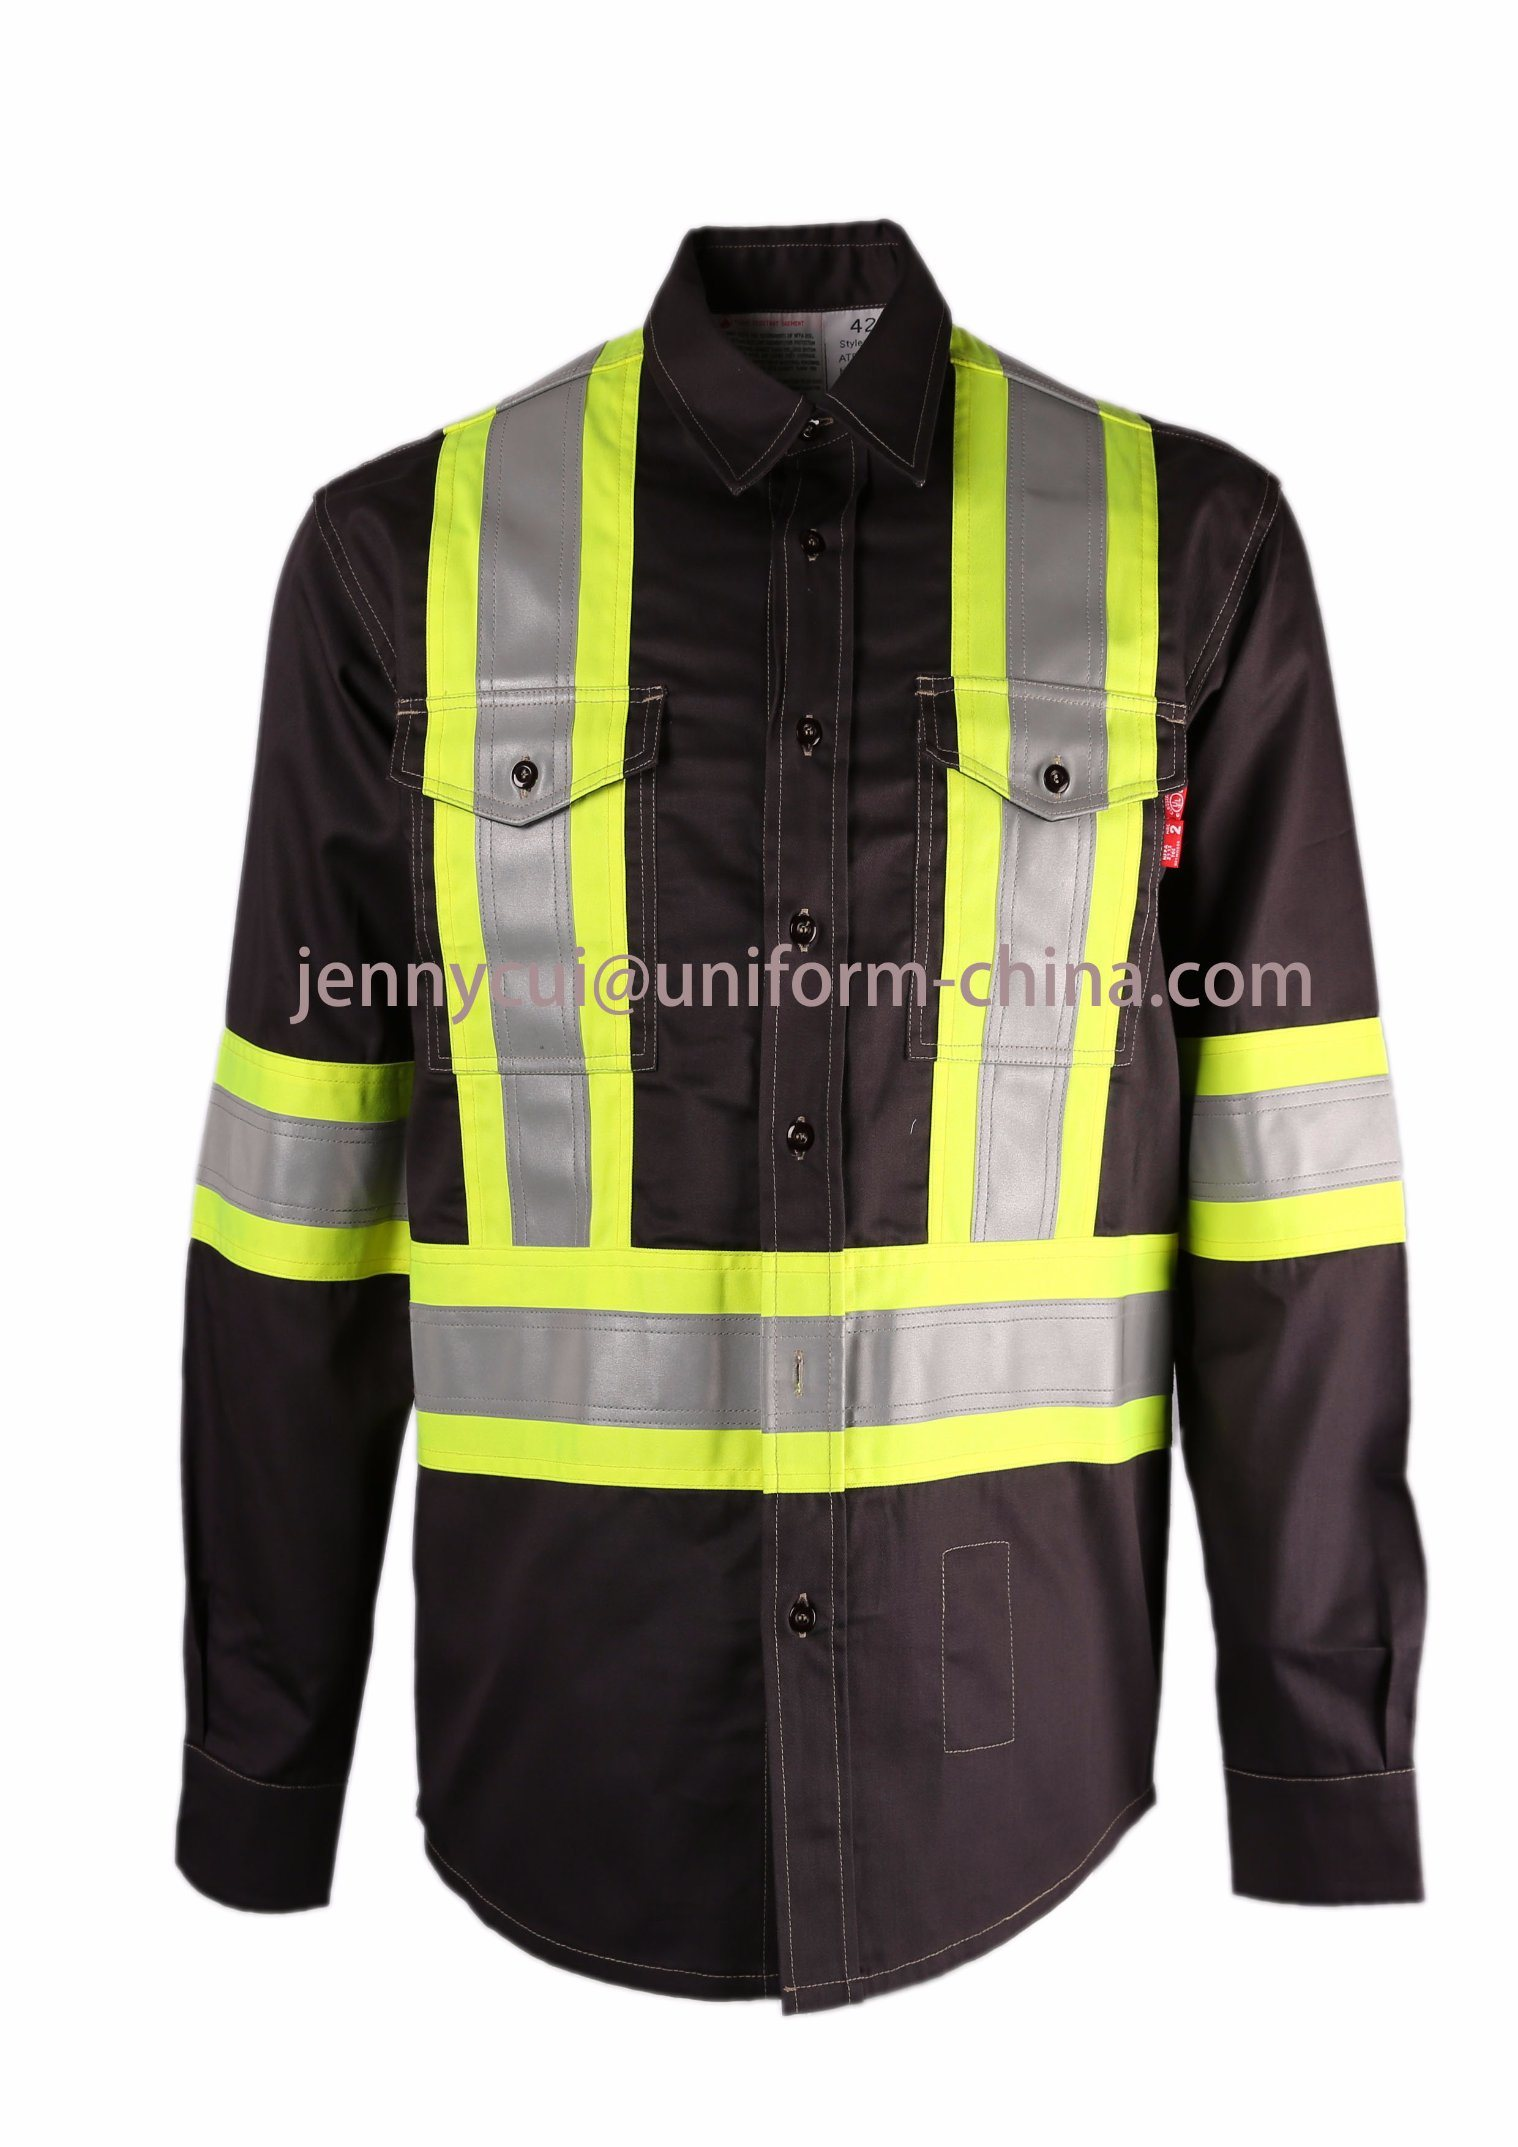 Nfpa2112-2012 Reflective Tape Fr Shirt Used Fr Clothing